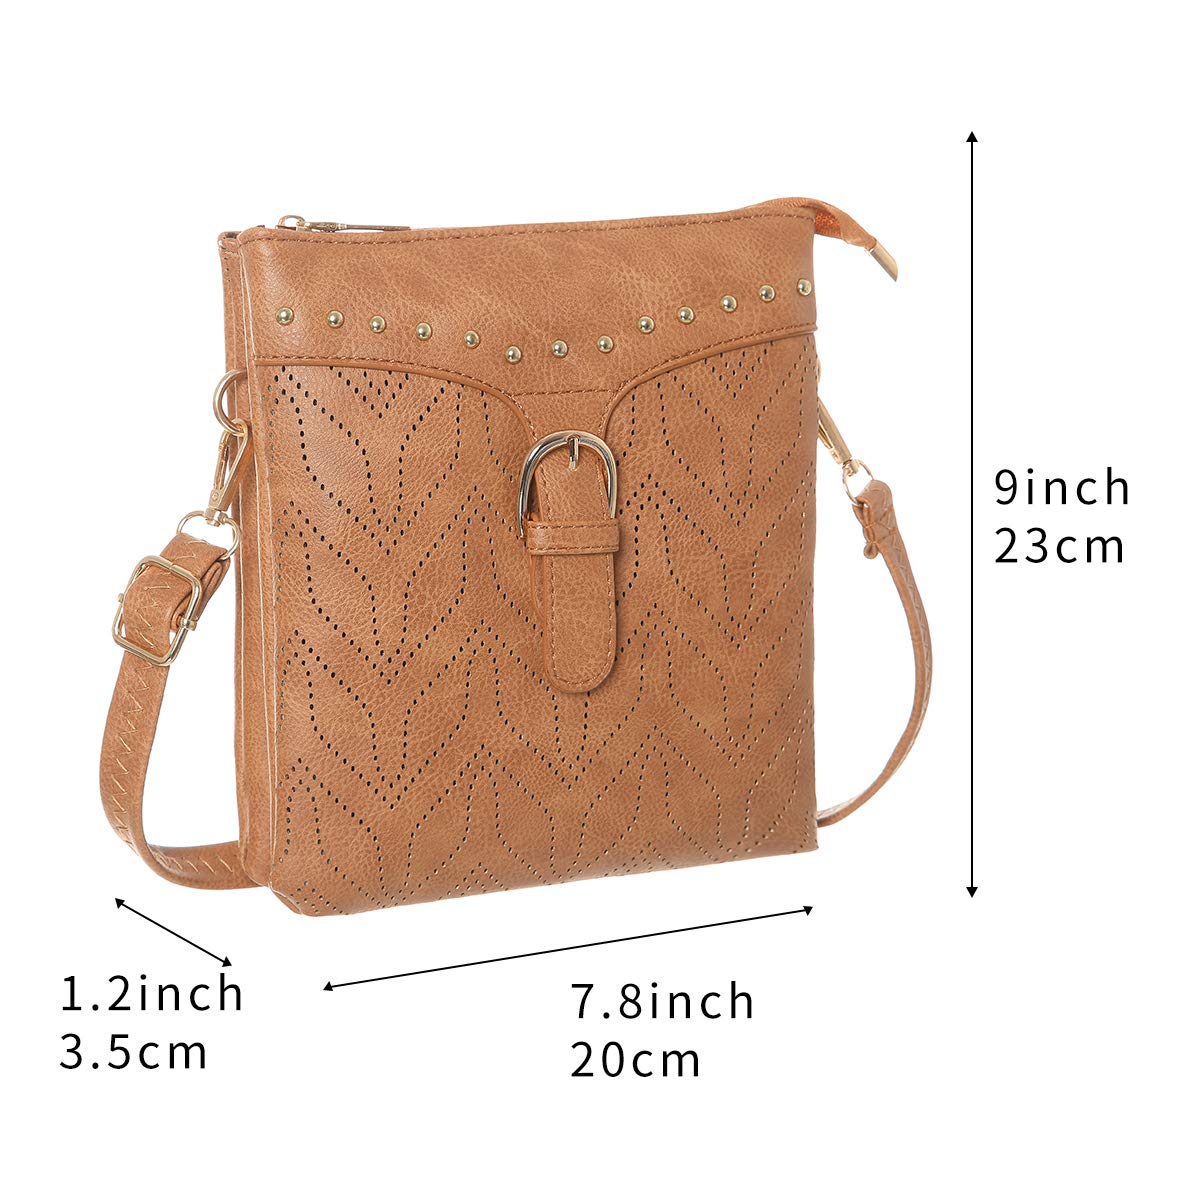 TENXITER Women Hollow Texture Small Crossbody Bags Cell Phone Purse Wallet Shoulder Bags for Womens